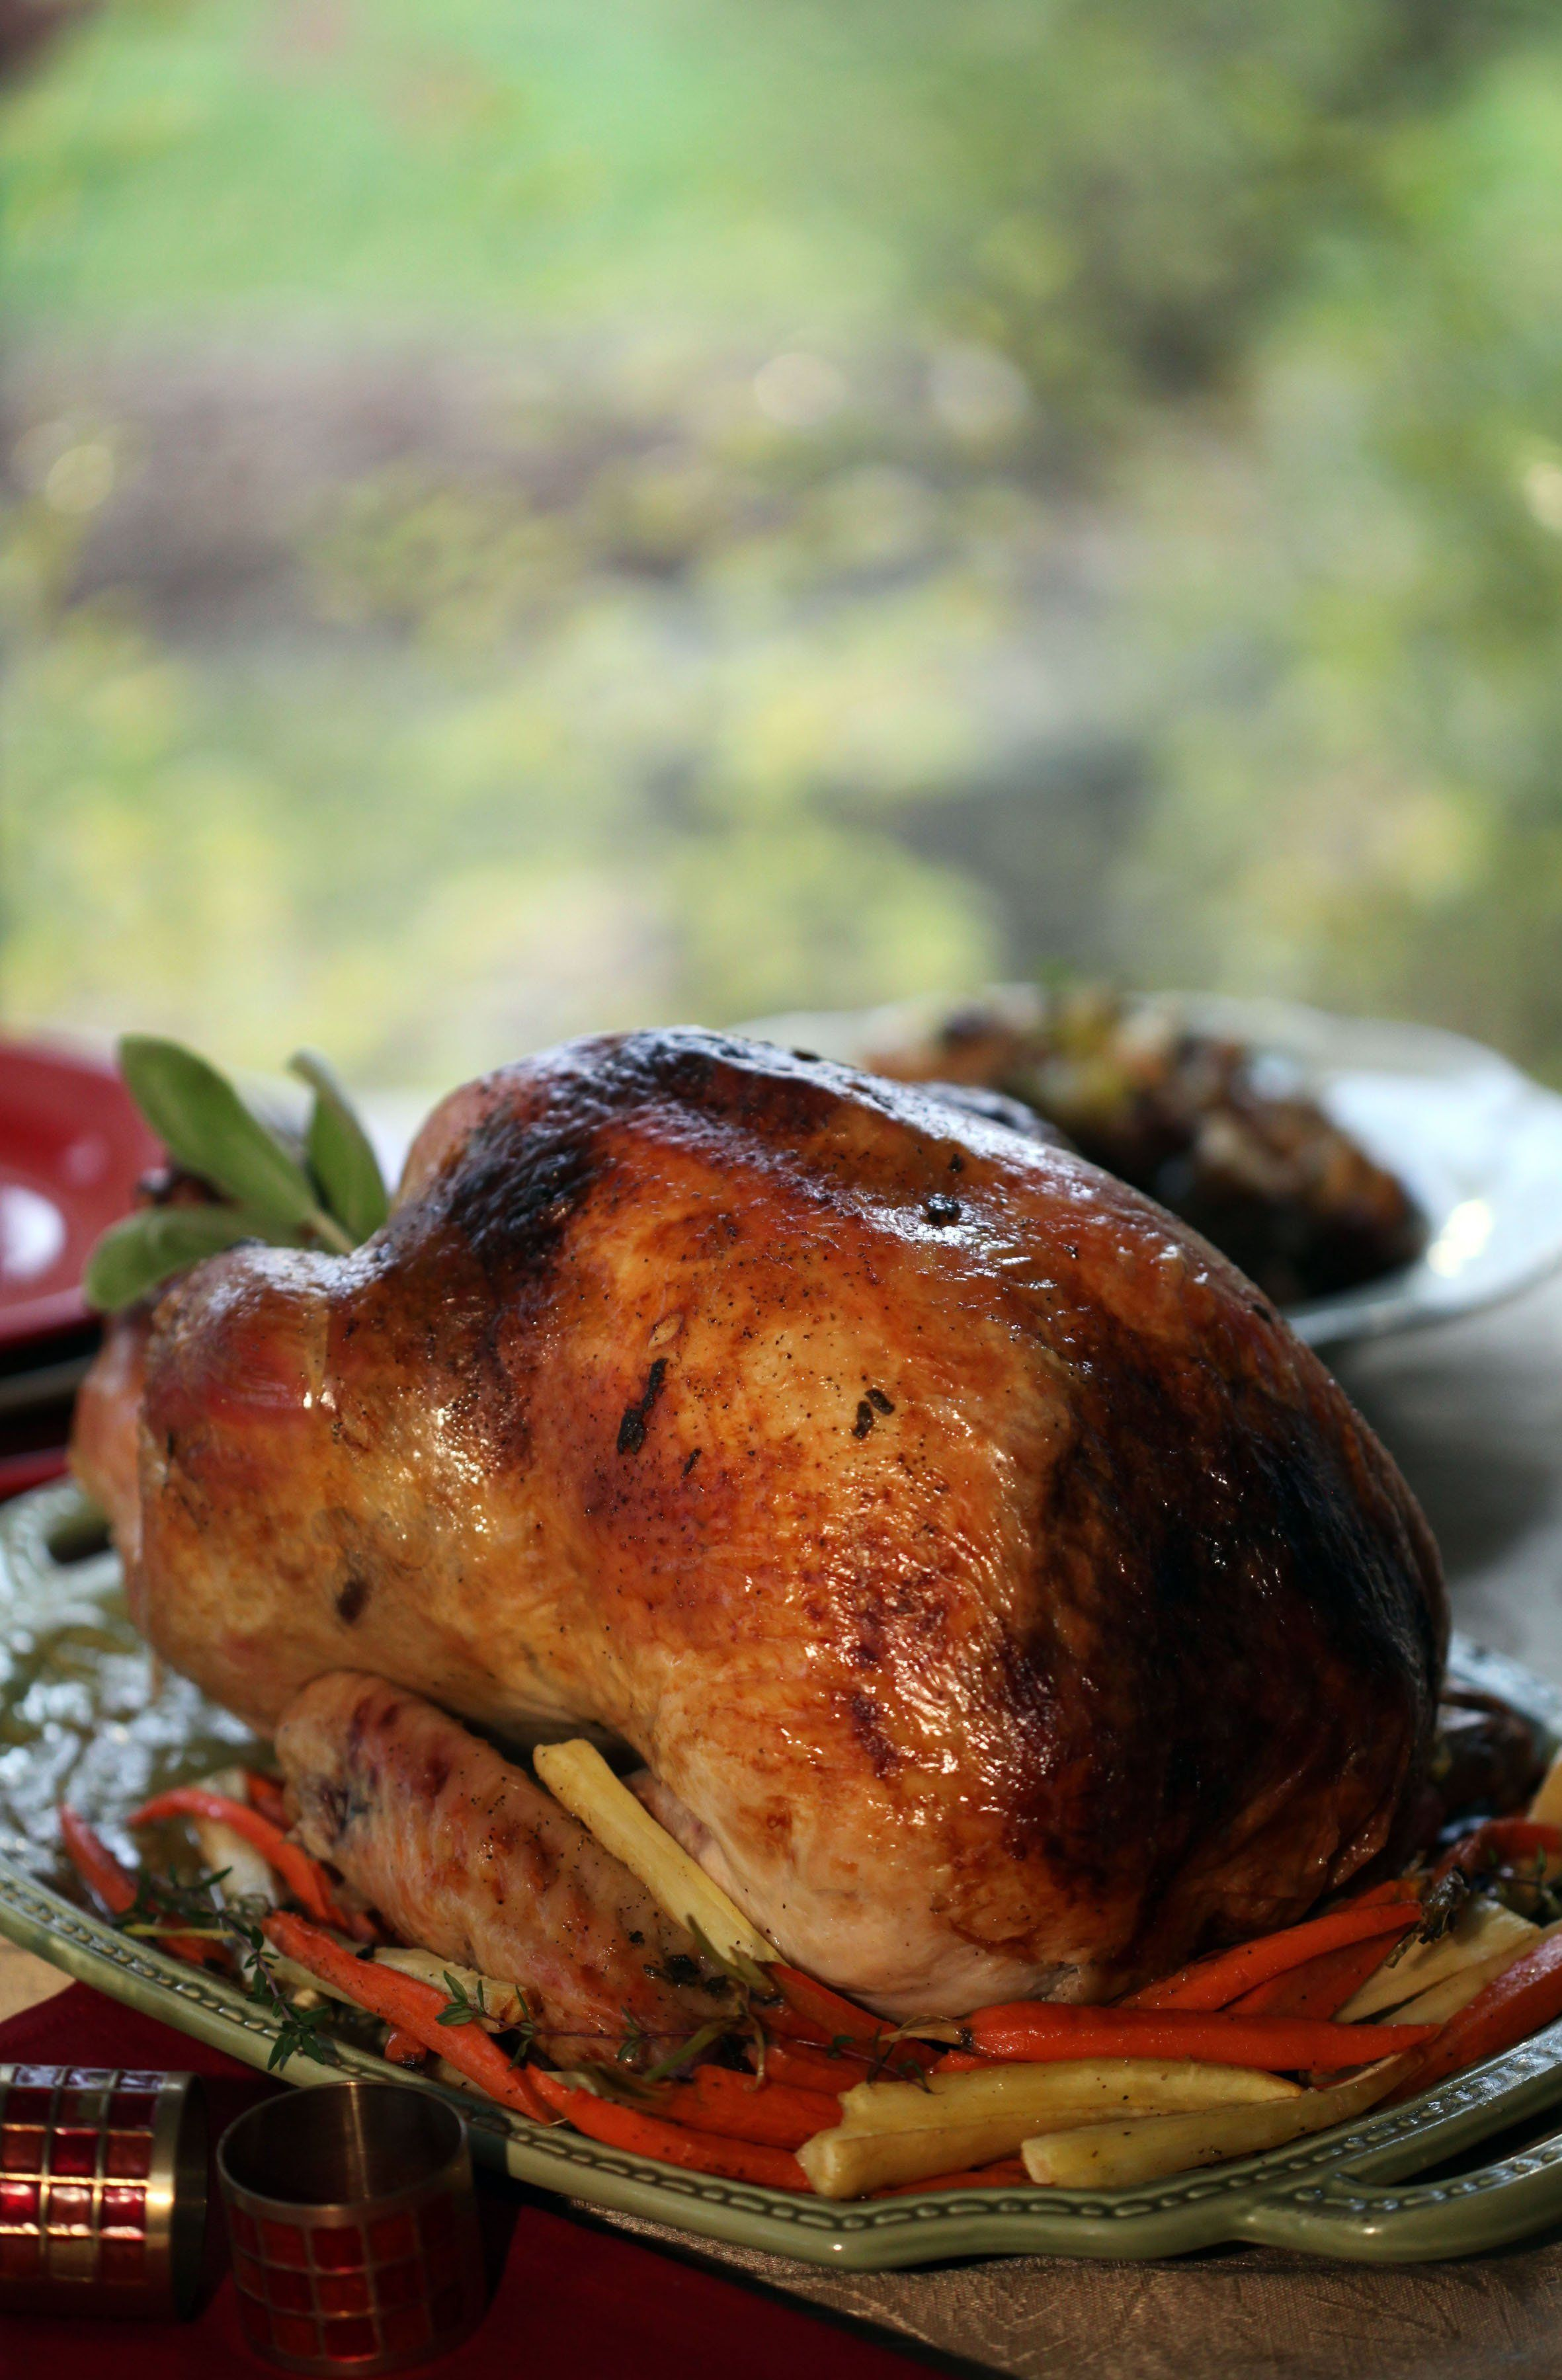 Honey brown, crisp skin with meat that's tender and juicy. That's a cook's goal for the holiday bird. Pictured is orange brined roast turkey with pan gravy. (Jessica J. Trevino/Detroit Free Press/MCT)